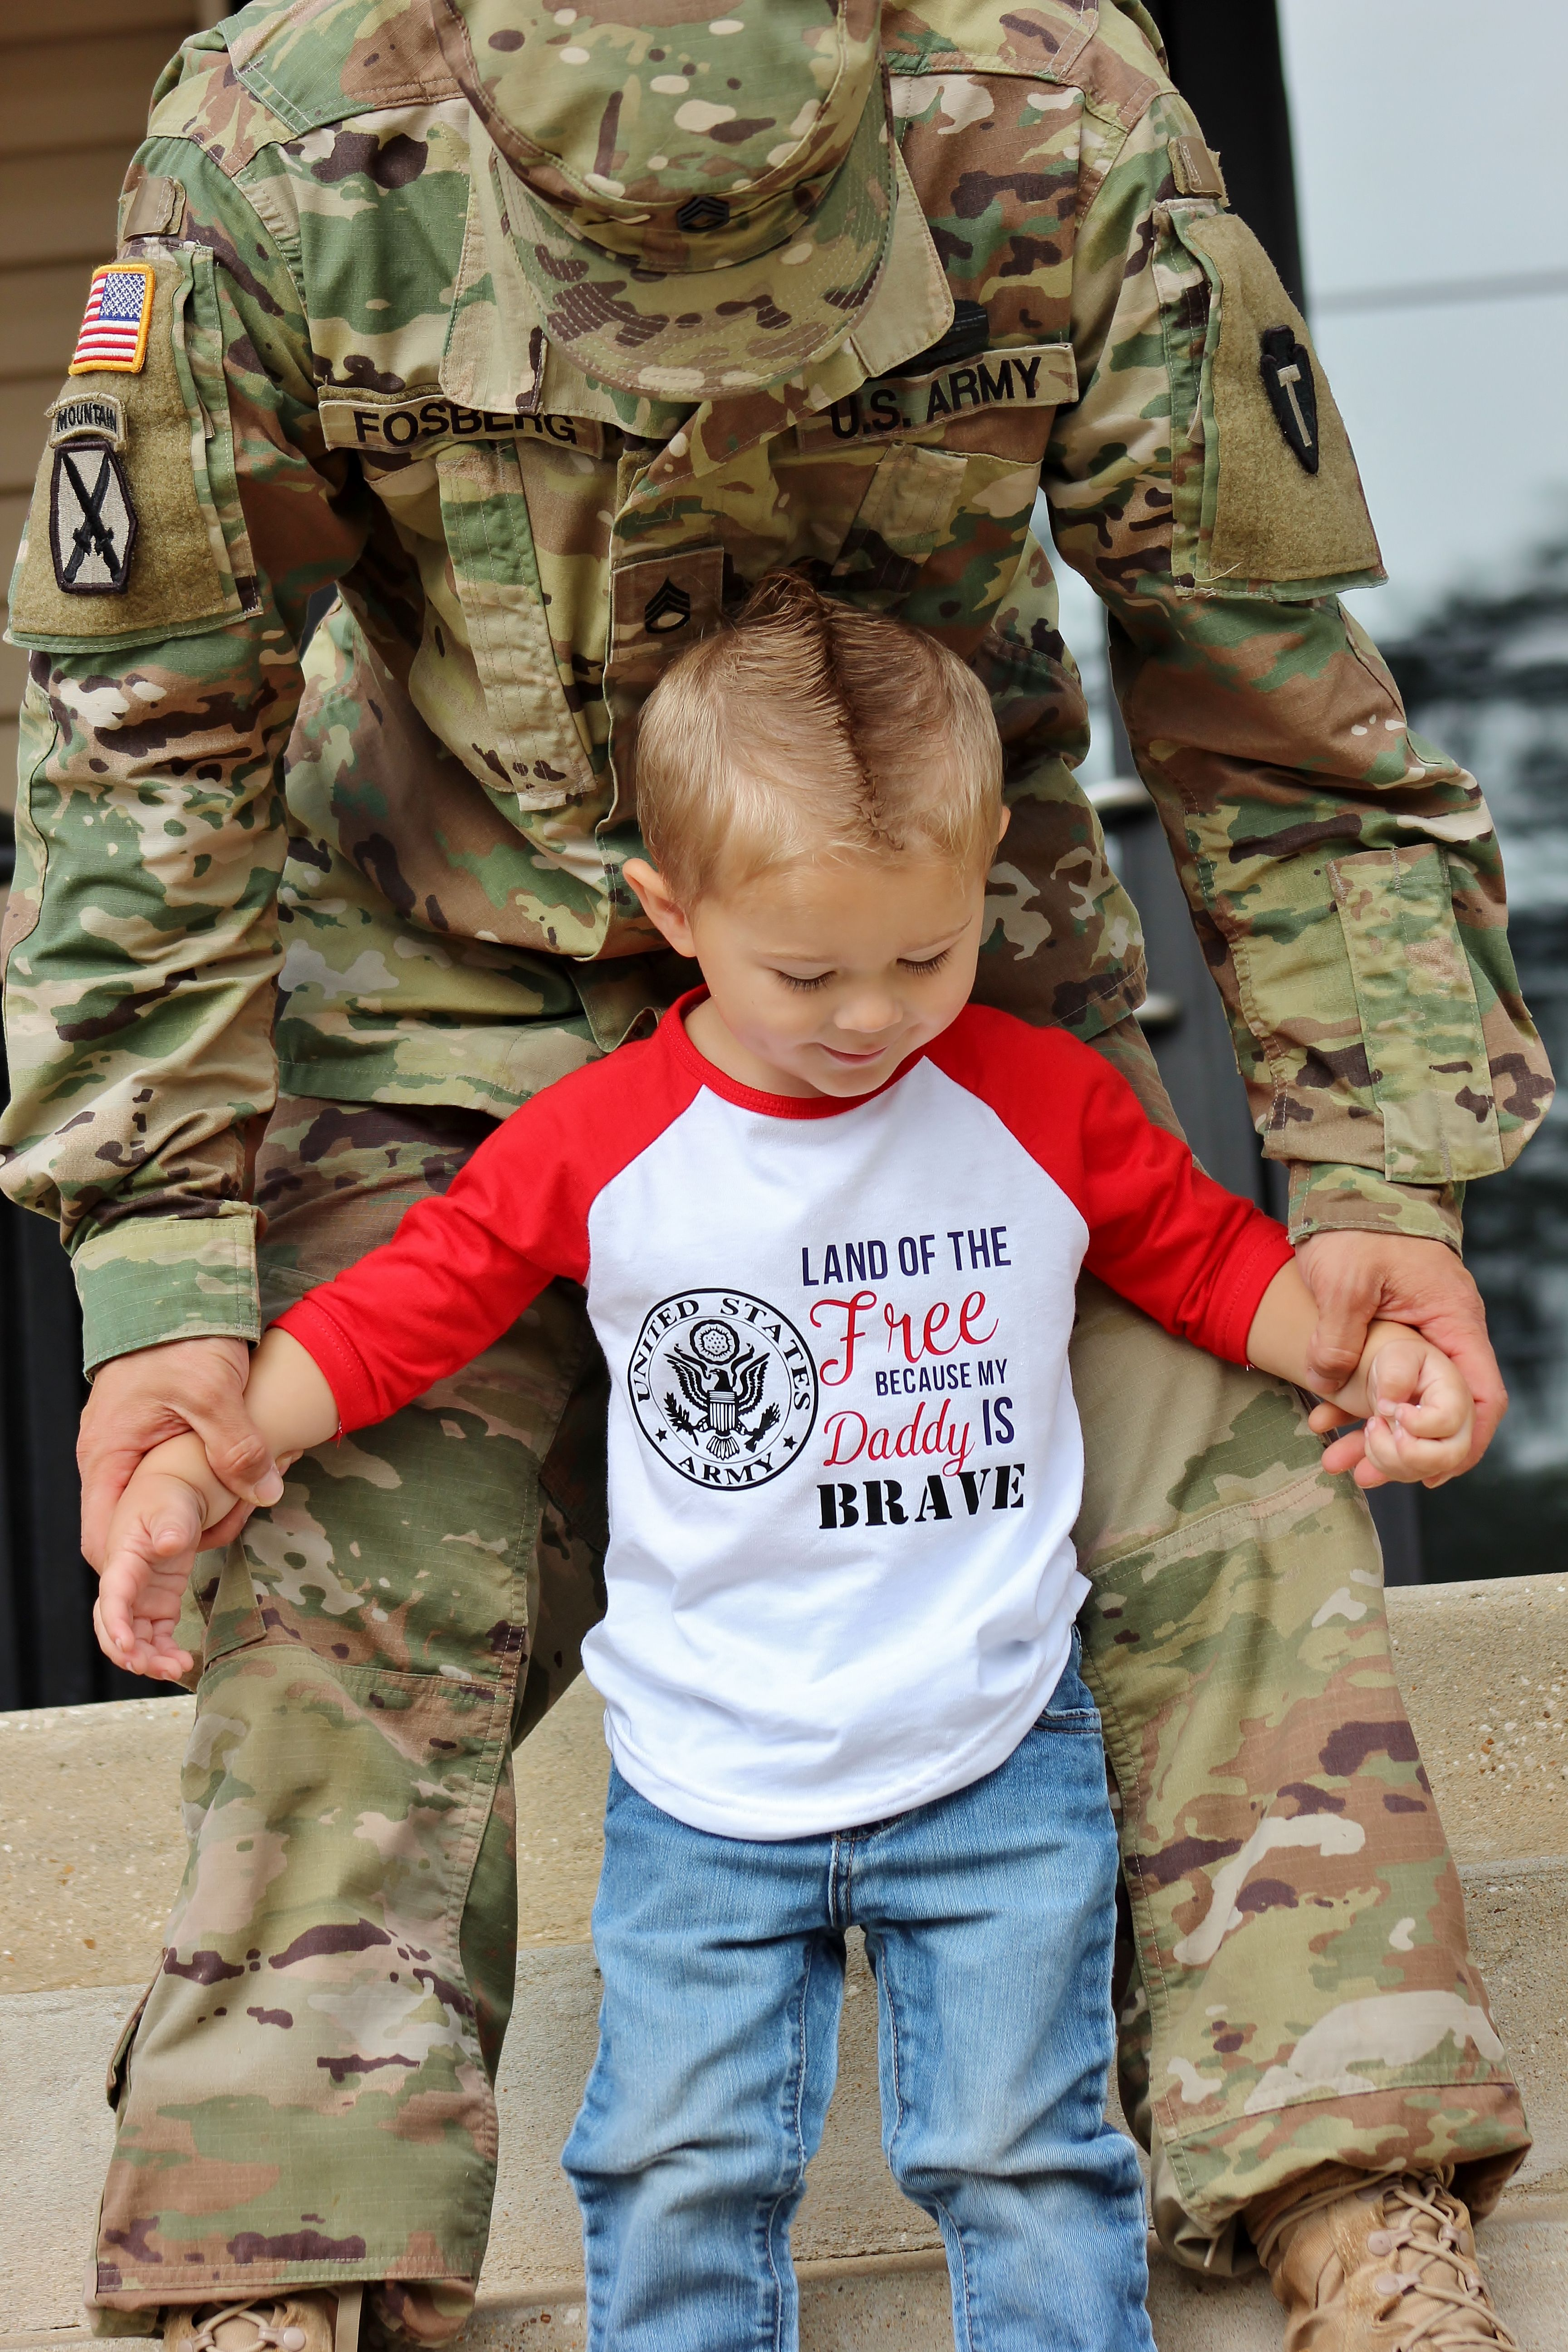 45821c24 Military homecoming kids shirt | military brat shirt | army brat shirt | navy  brat shirt | marines beat shirt | Air Force beat shirt military child shirt  by ...